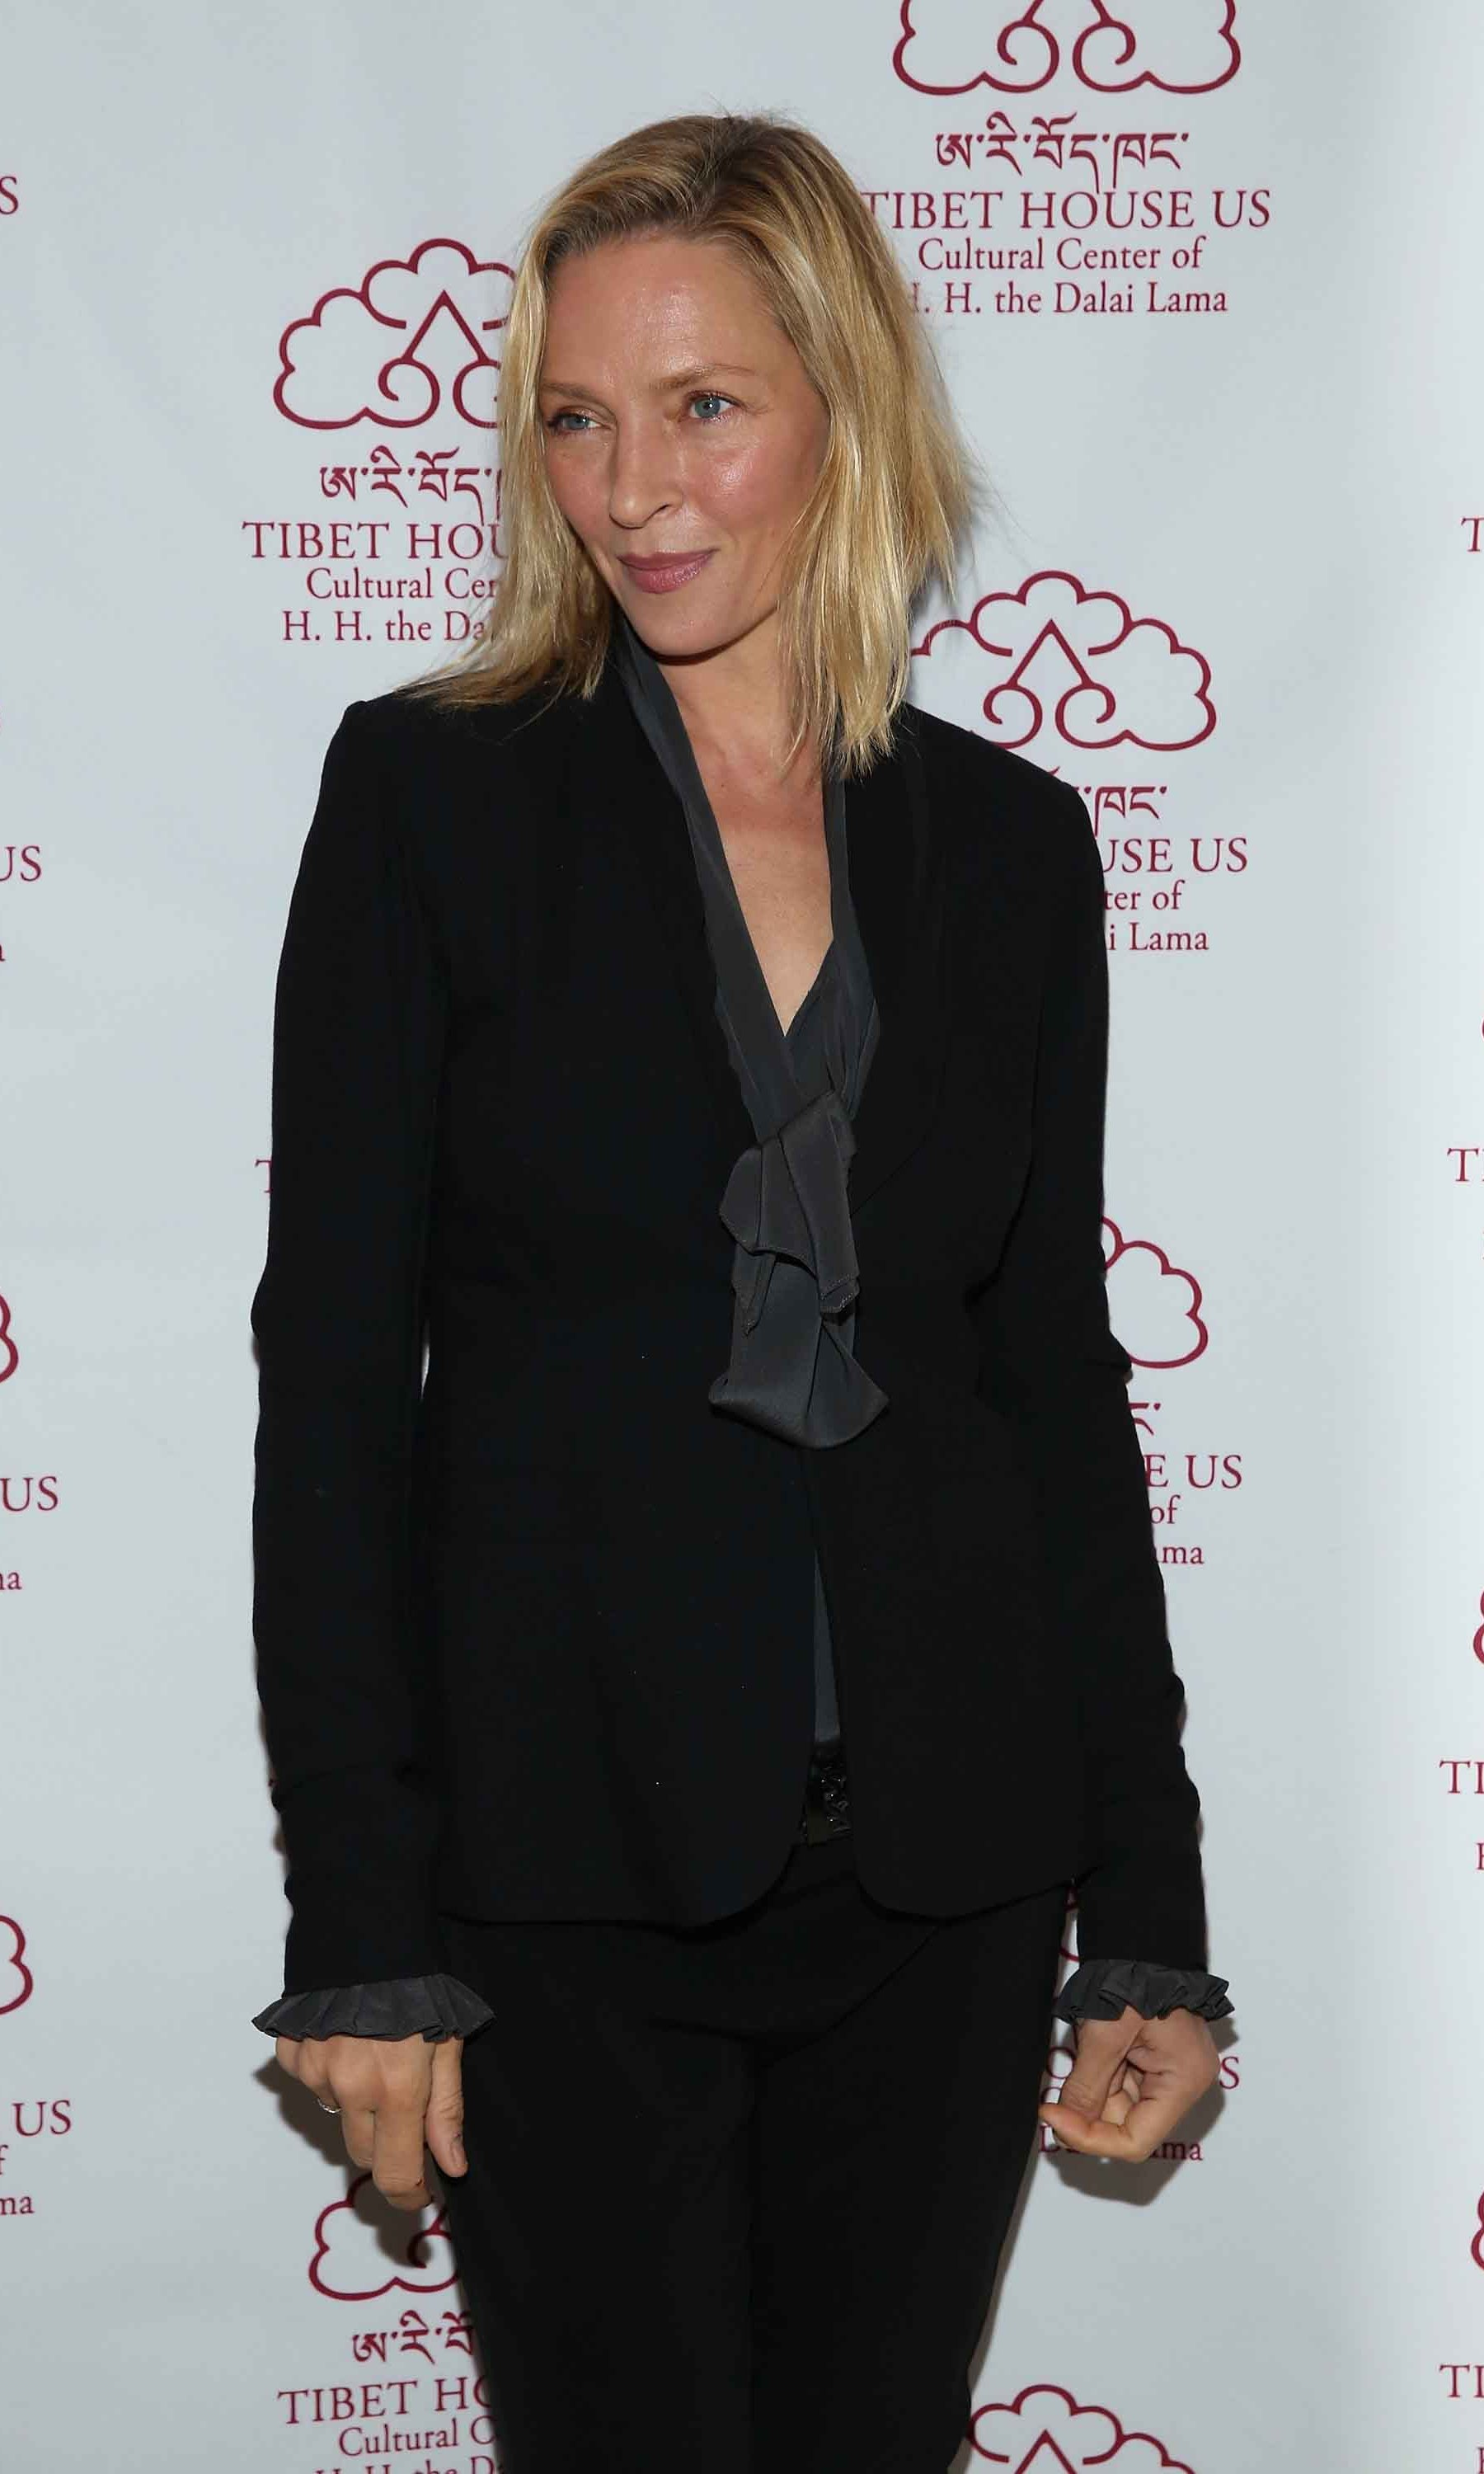 December 3: Uma Thurman attended The 13th Annual Tibet House US Benefit Auction at Christie's auction house in New York City. 